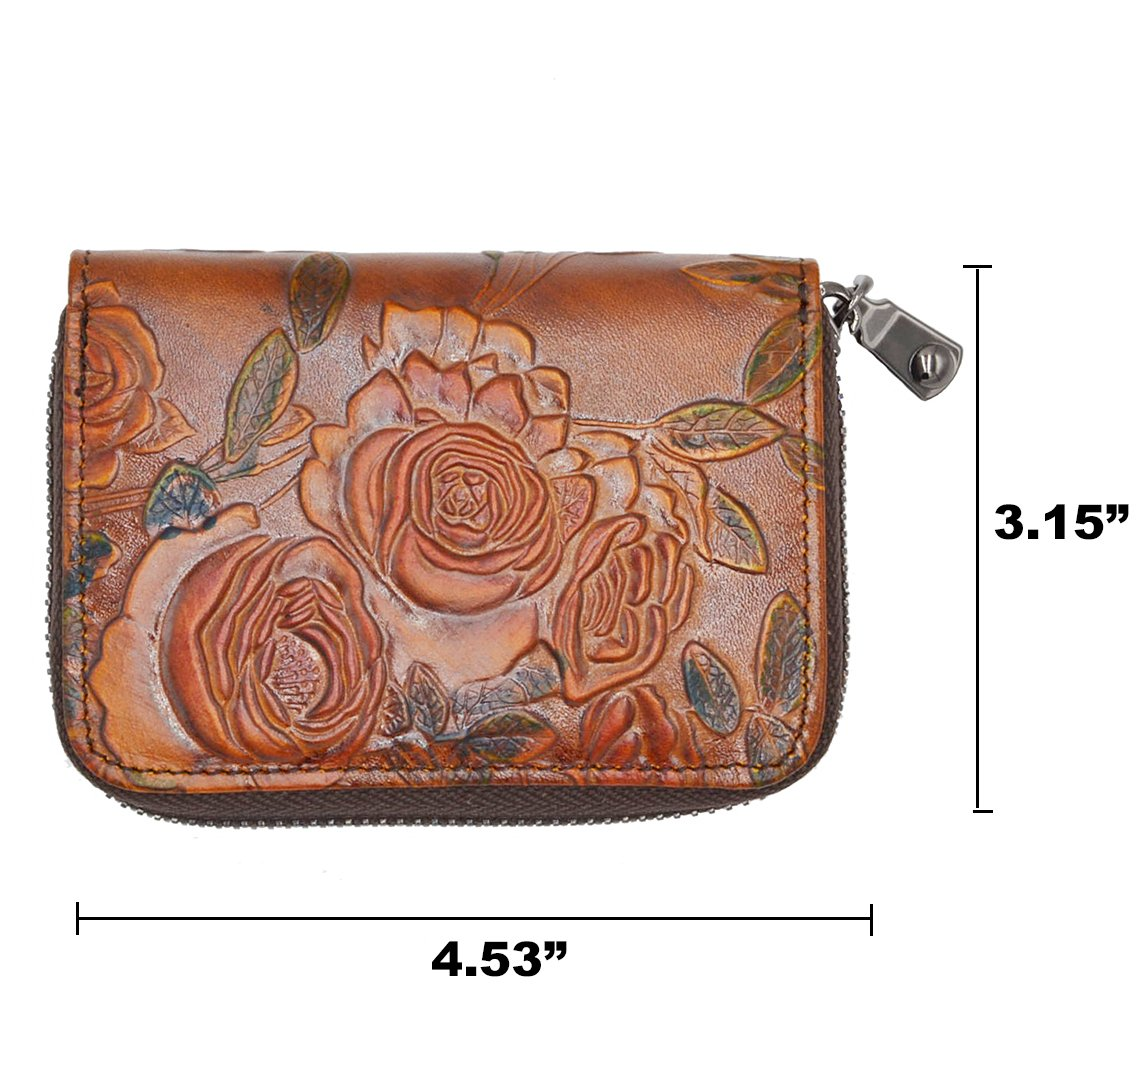 RFID Blocking Credit Card Holder for Women - Leather Zipper Card Case Minimalist Accordion Wallet Hand-Painted Color by Freezx (Image #7)